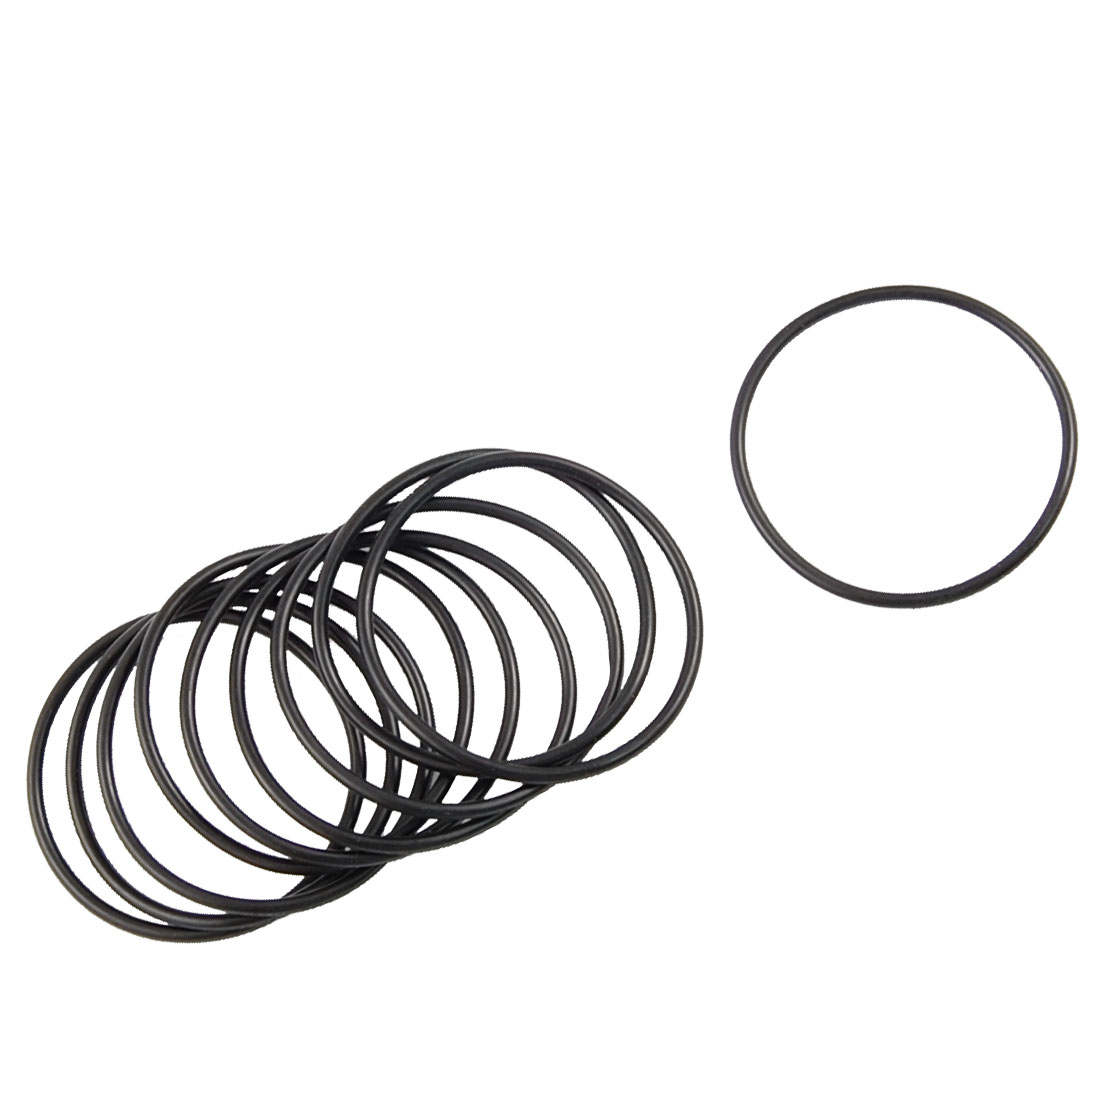 10 Pcs Black Metric O Rings Nitrile Rubber 40mm OD 2mm Thickness